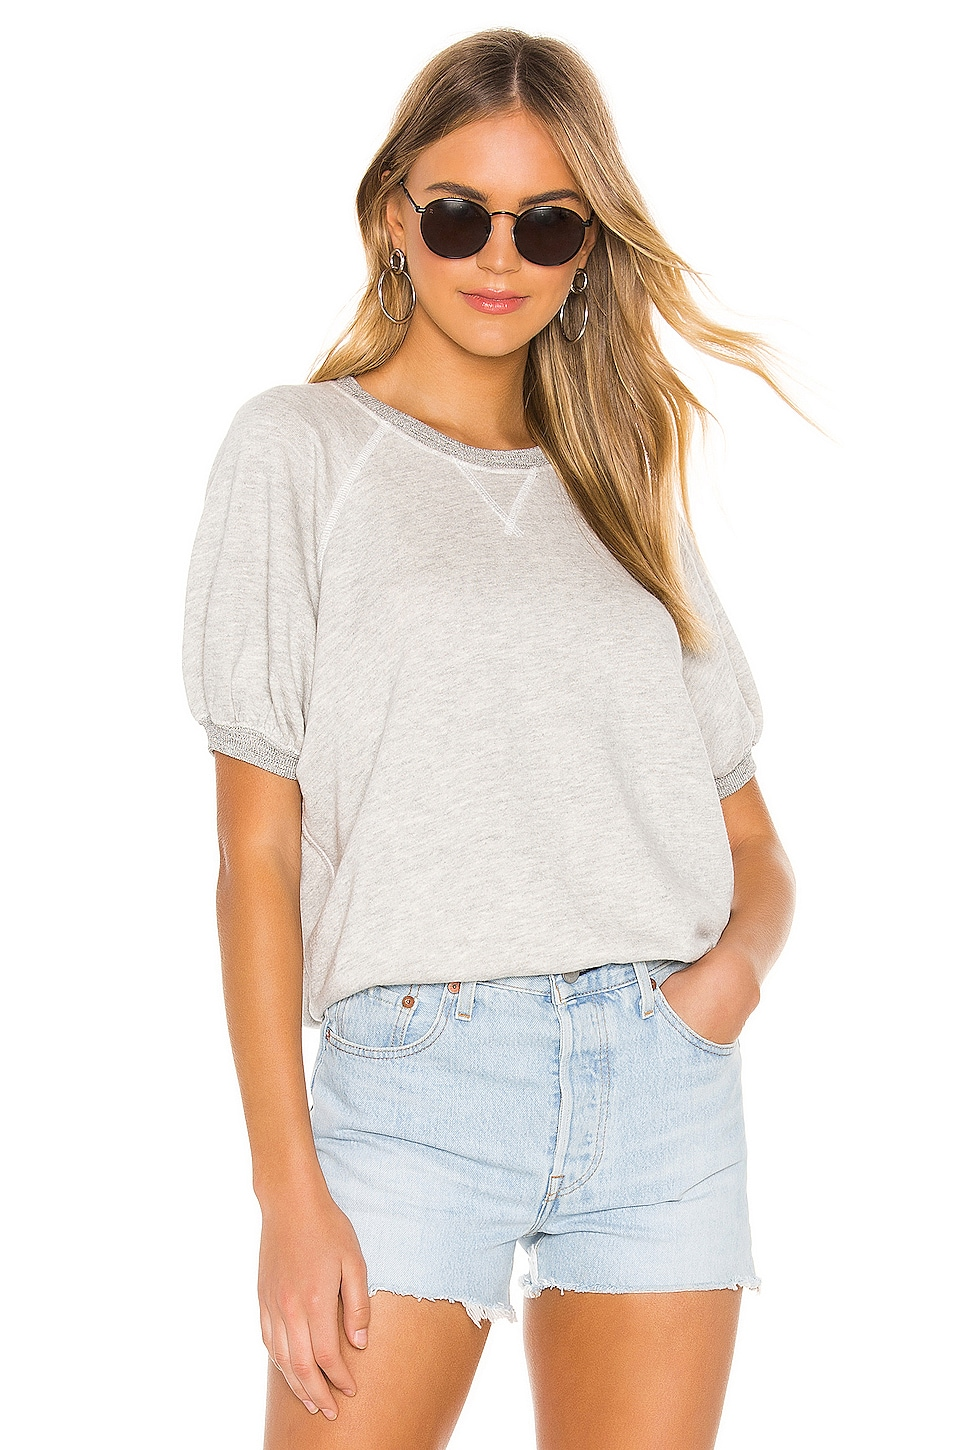 The Great Puff Short Sleeve Sweatshirt in Heather Grey